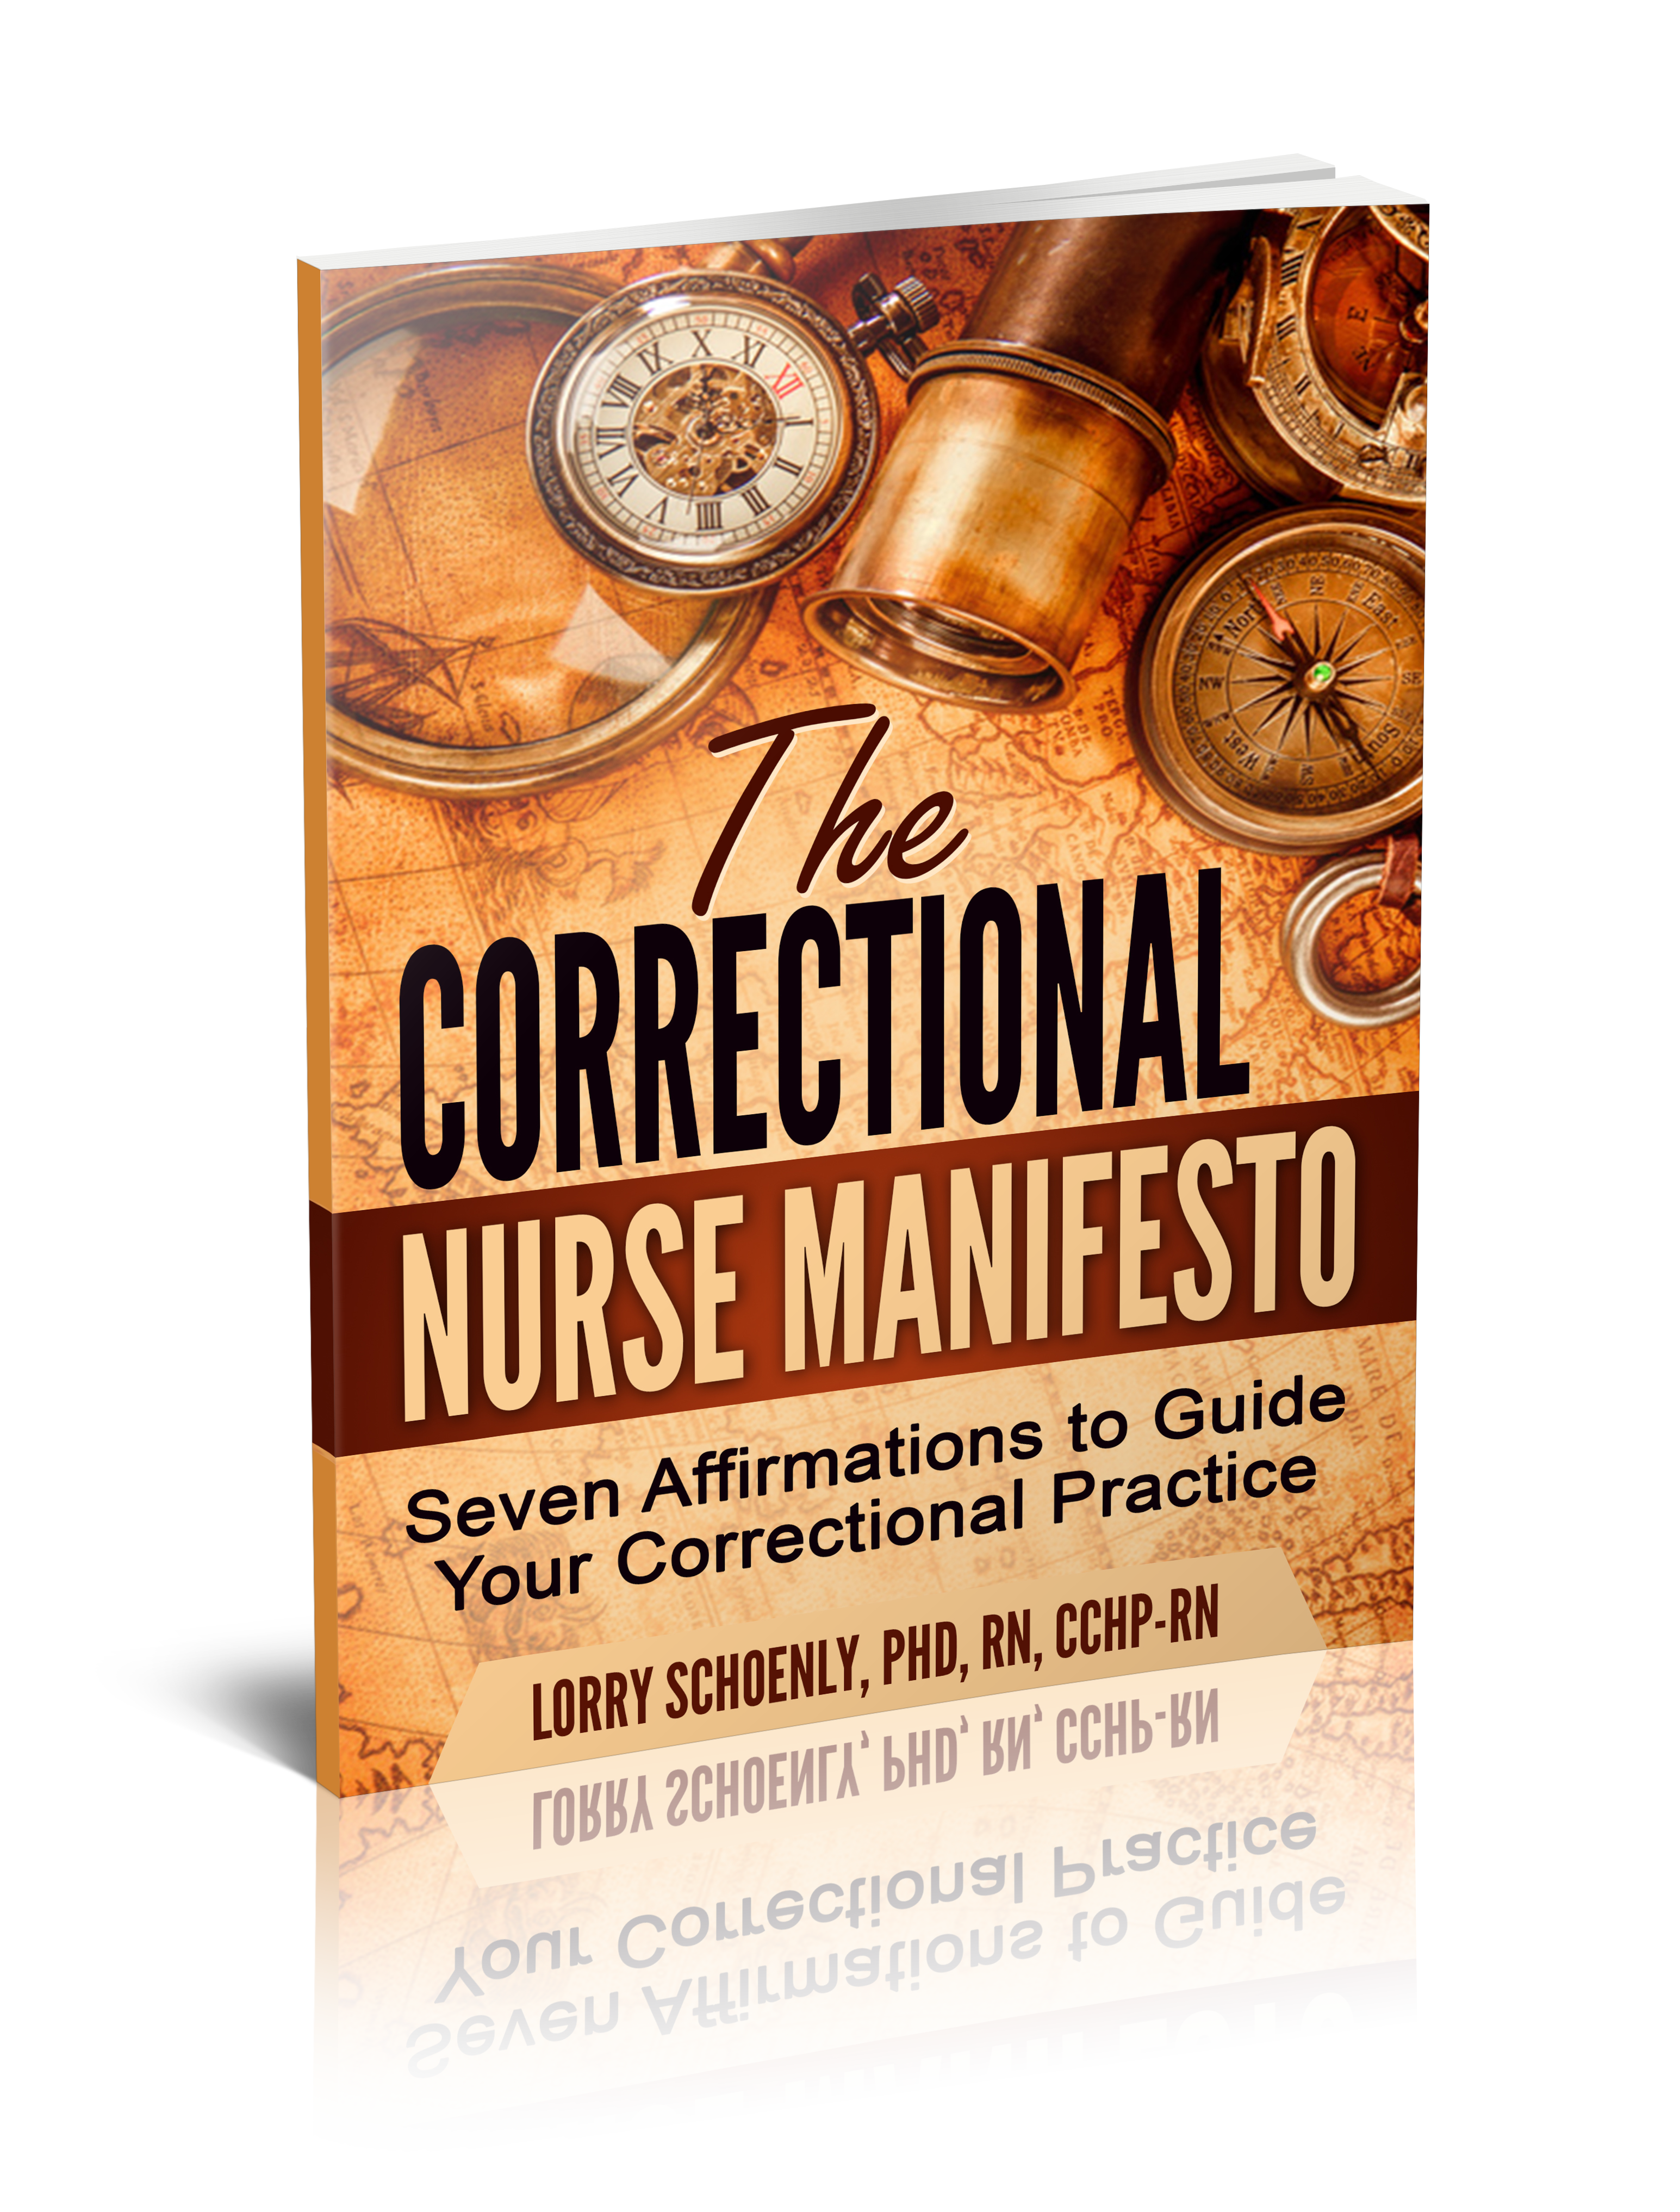 The correctional Nurse Manifesto